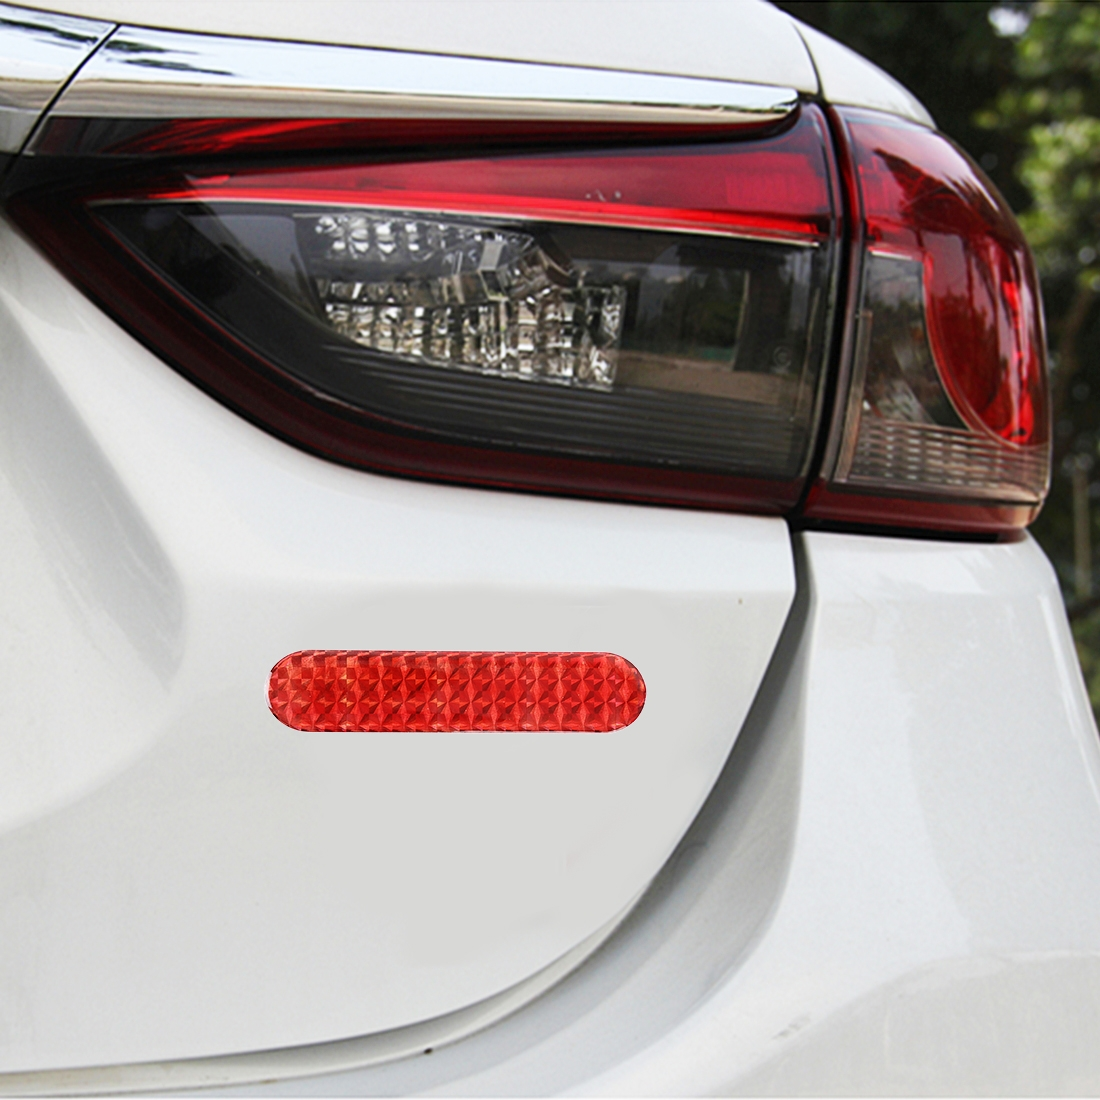 2 PCS High-brightness Laser Reflective Strip Warning Tape Decal Car Reflective Stickers Safety Mark (Red)